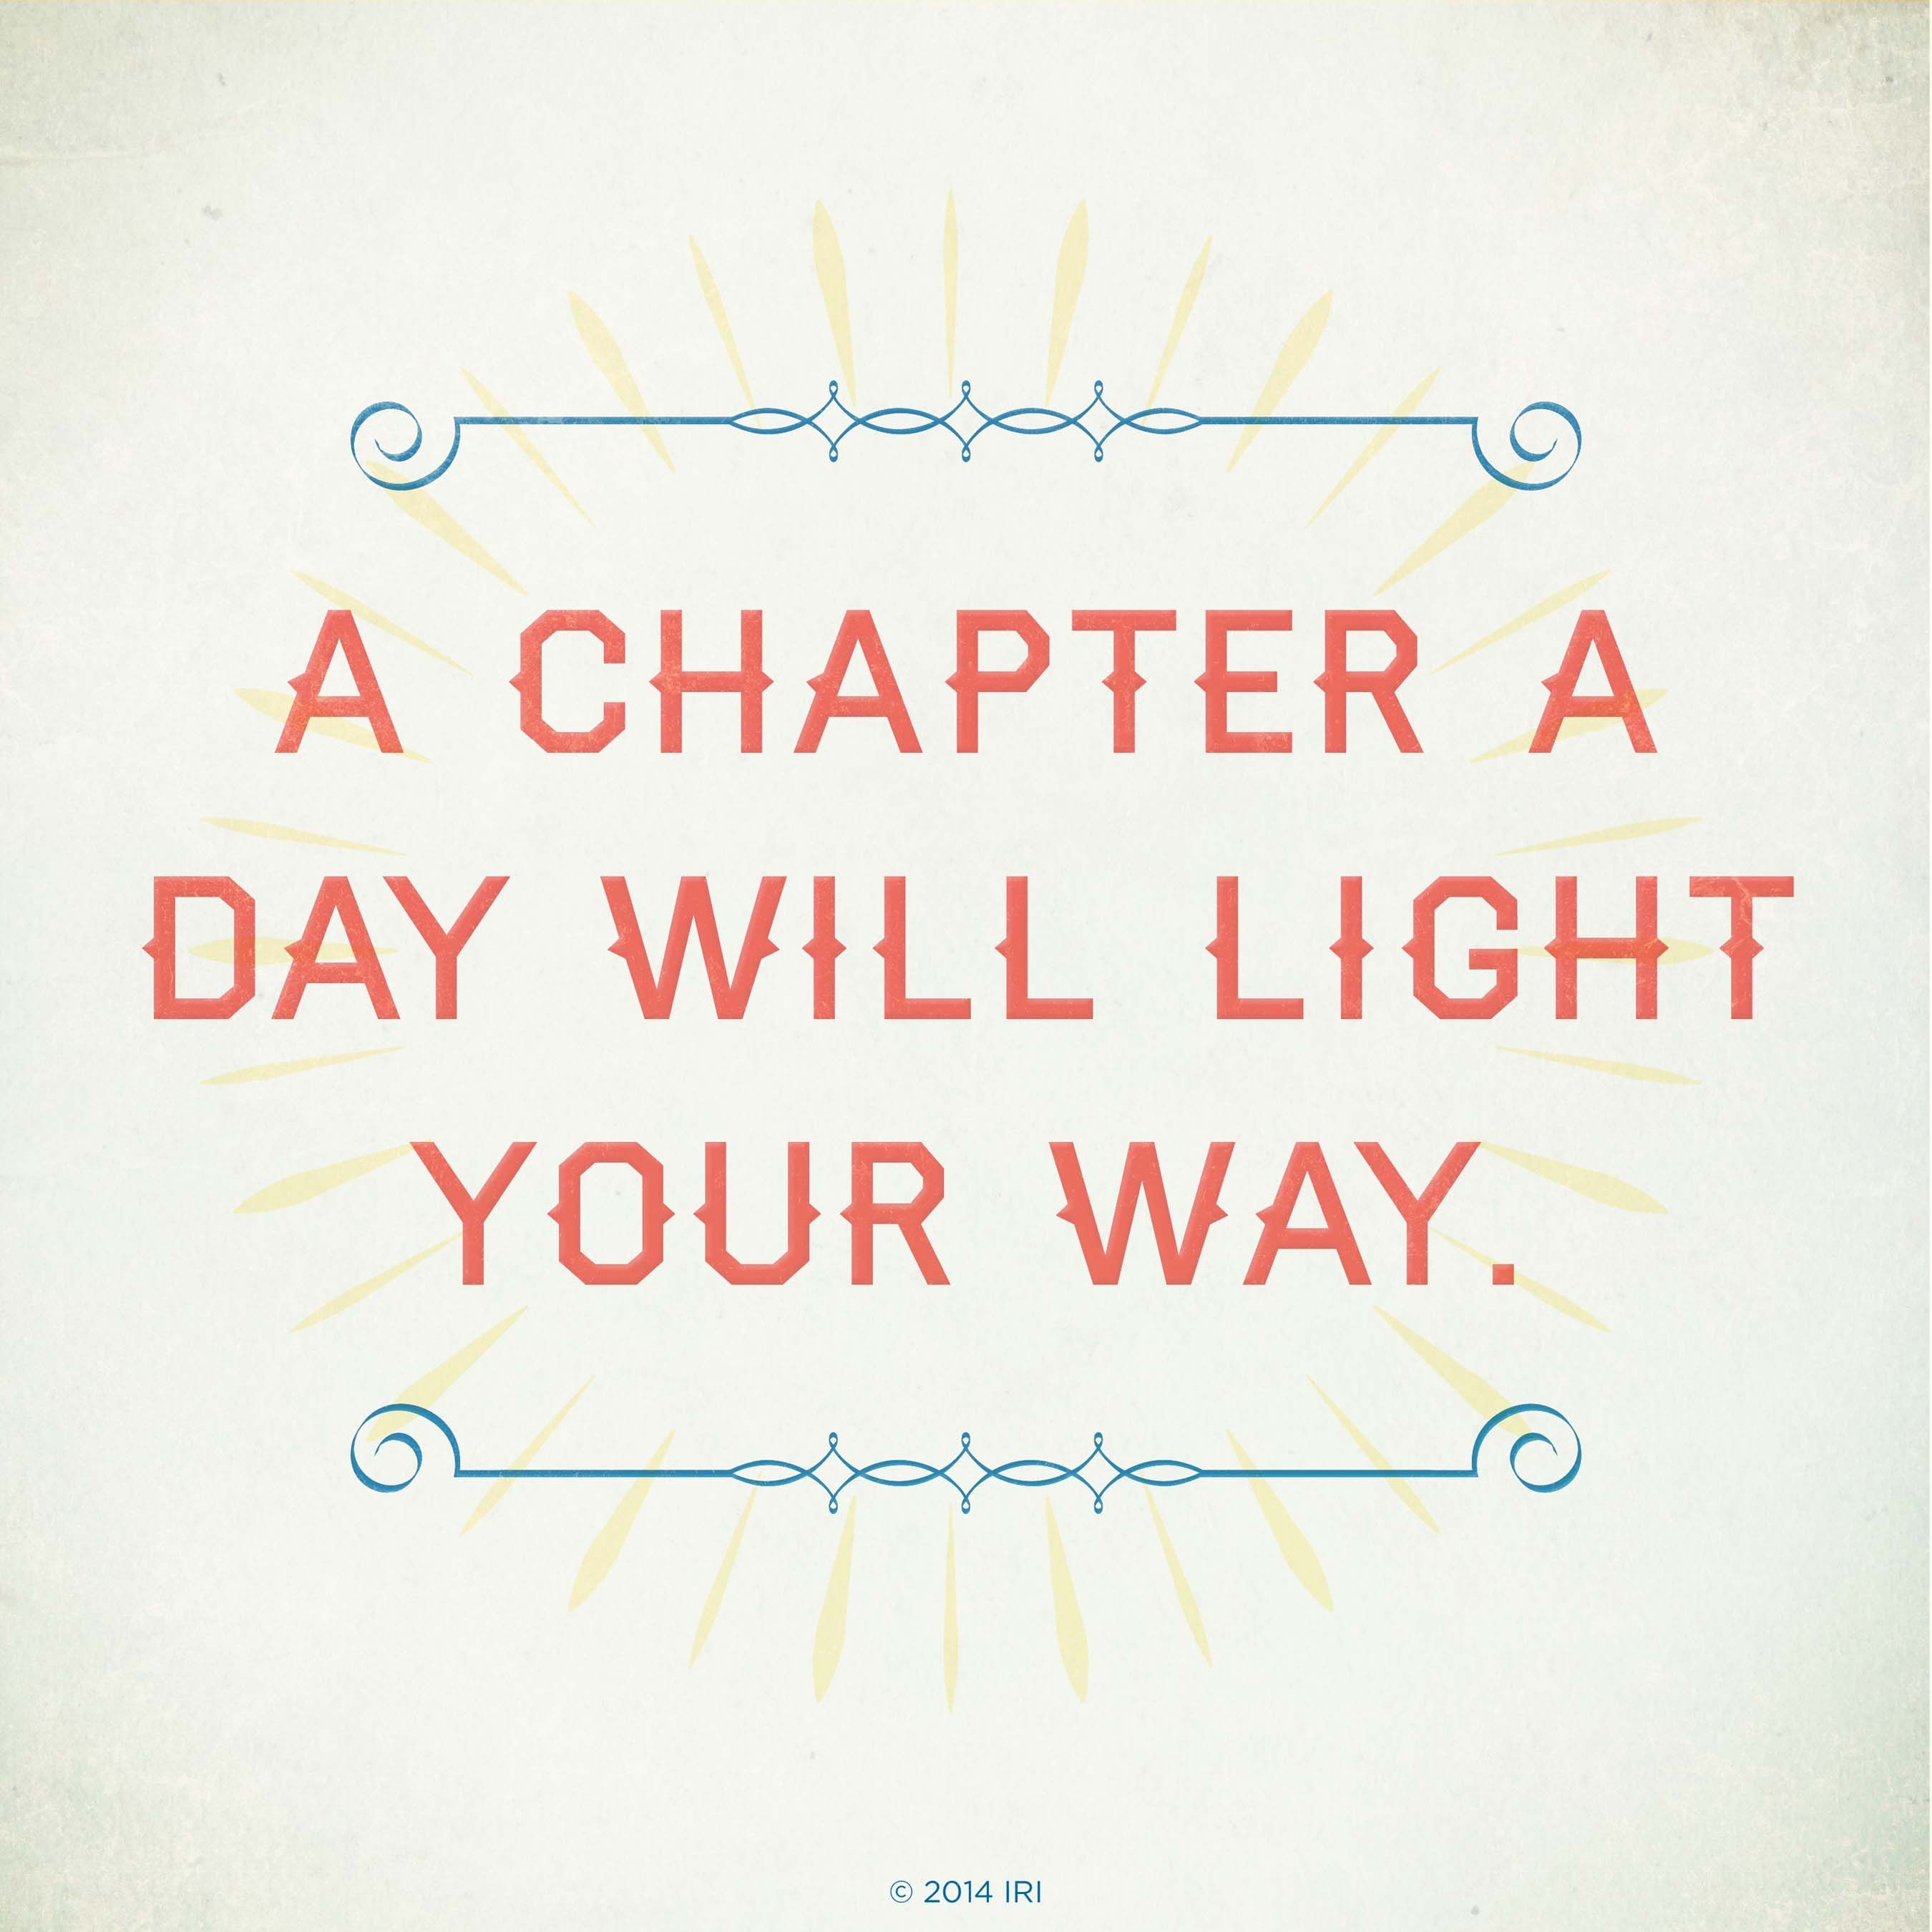 A chapter a day will light your way.